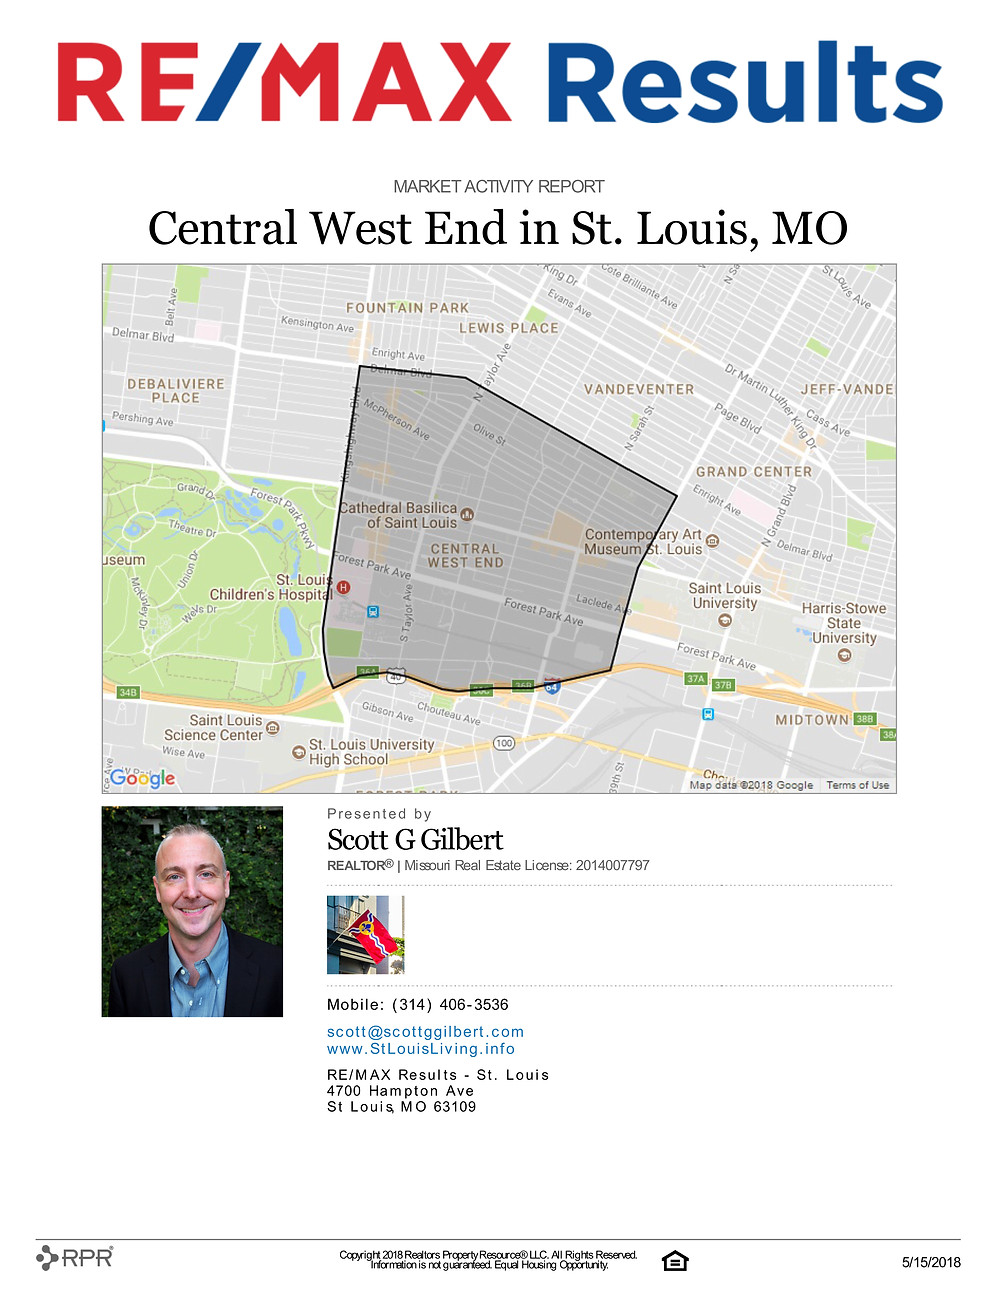 Central West End Market Activity Report